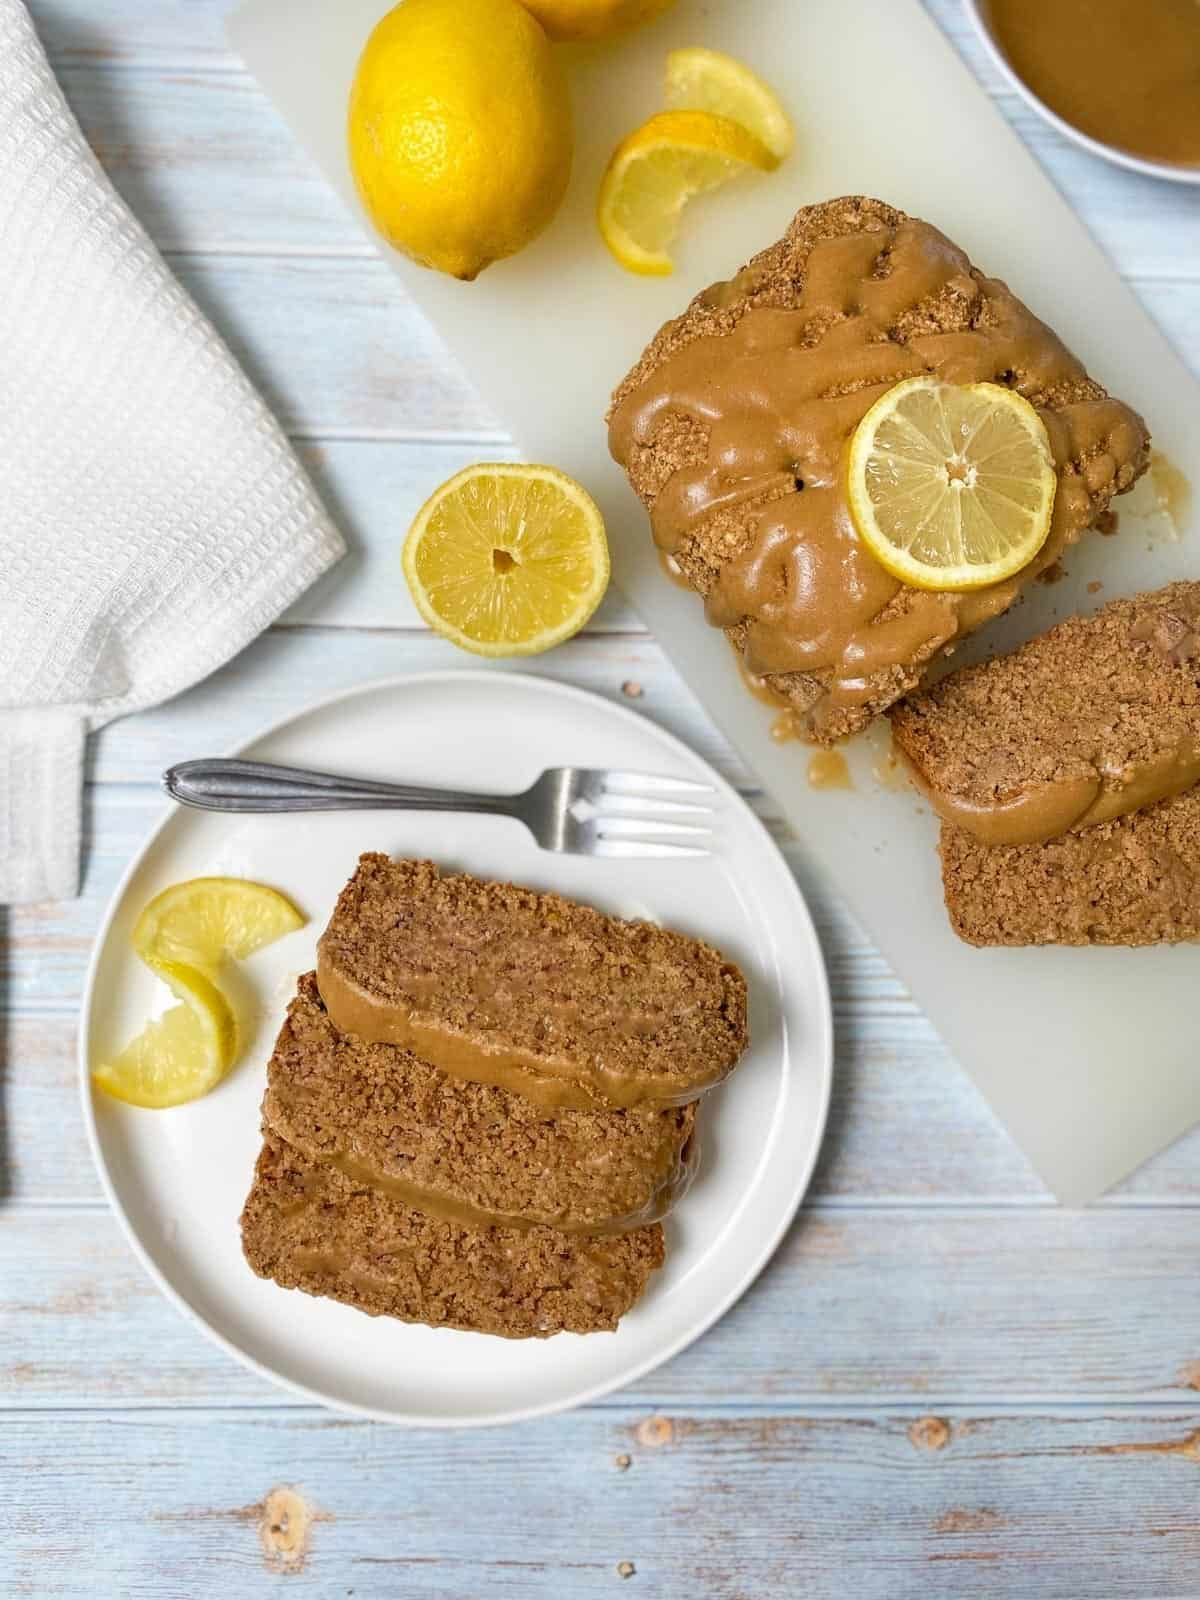 slices of lemon bread in white plate with remaining loaf beside it on white cutting board